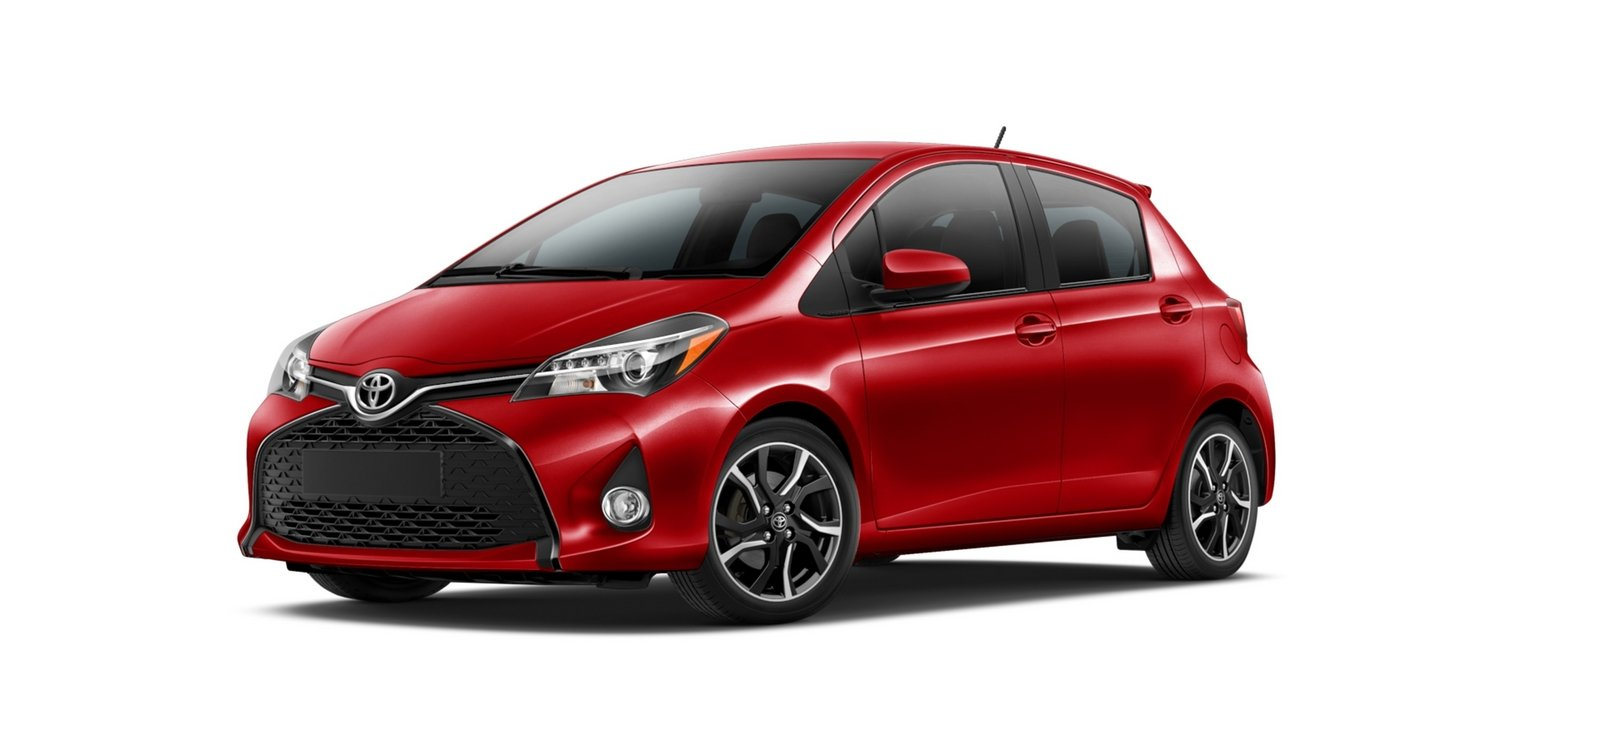 2015 toyota yaris review top speed. Black Bedroom Furniture Sets. Home Design Ideas